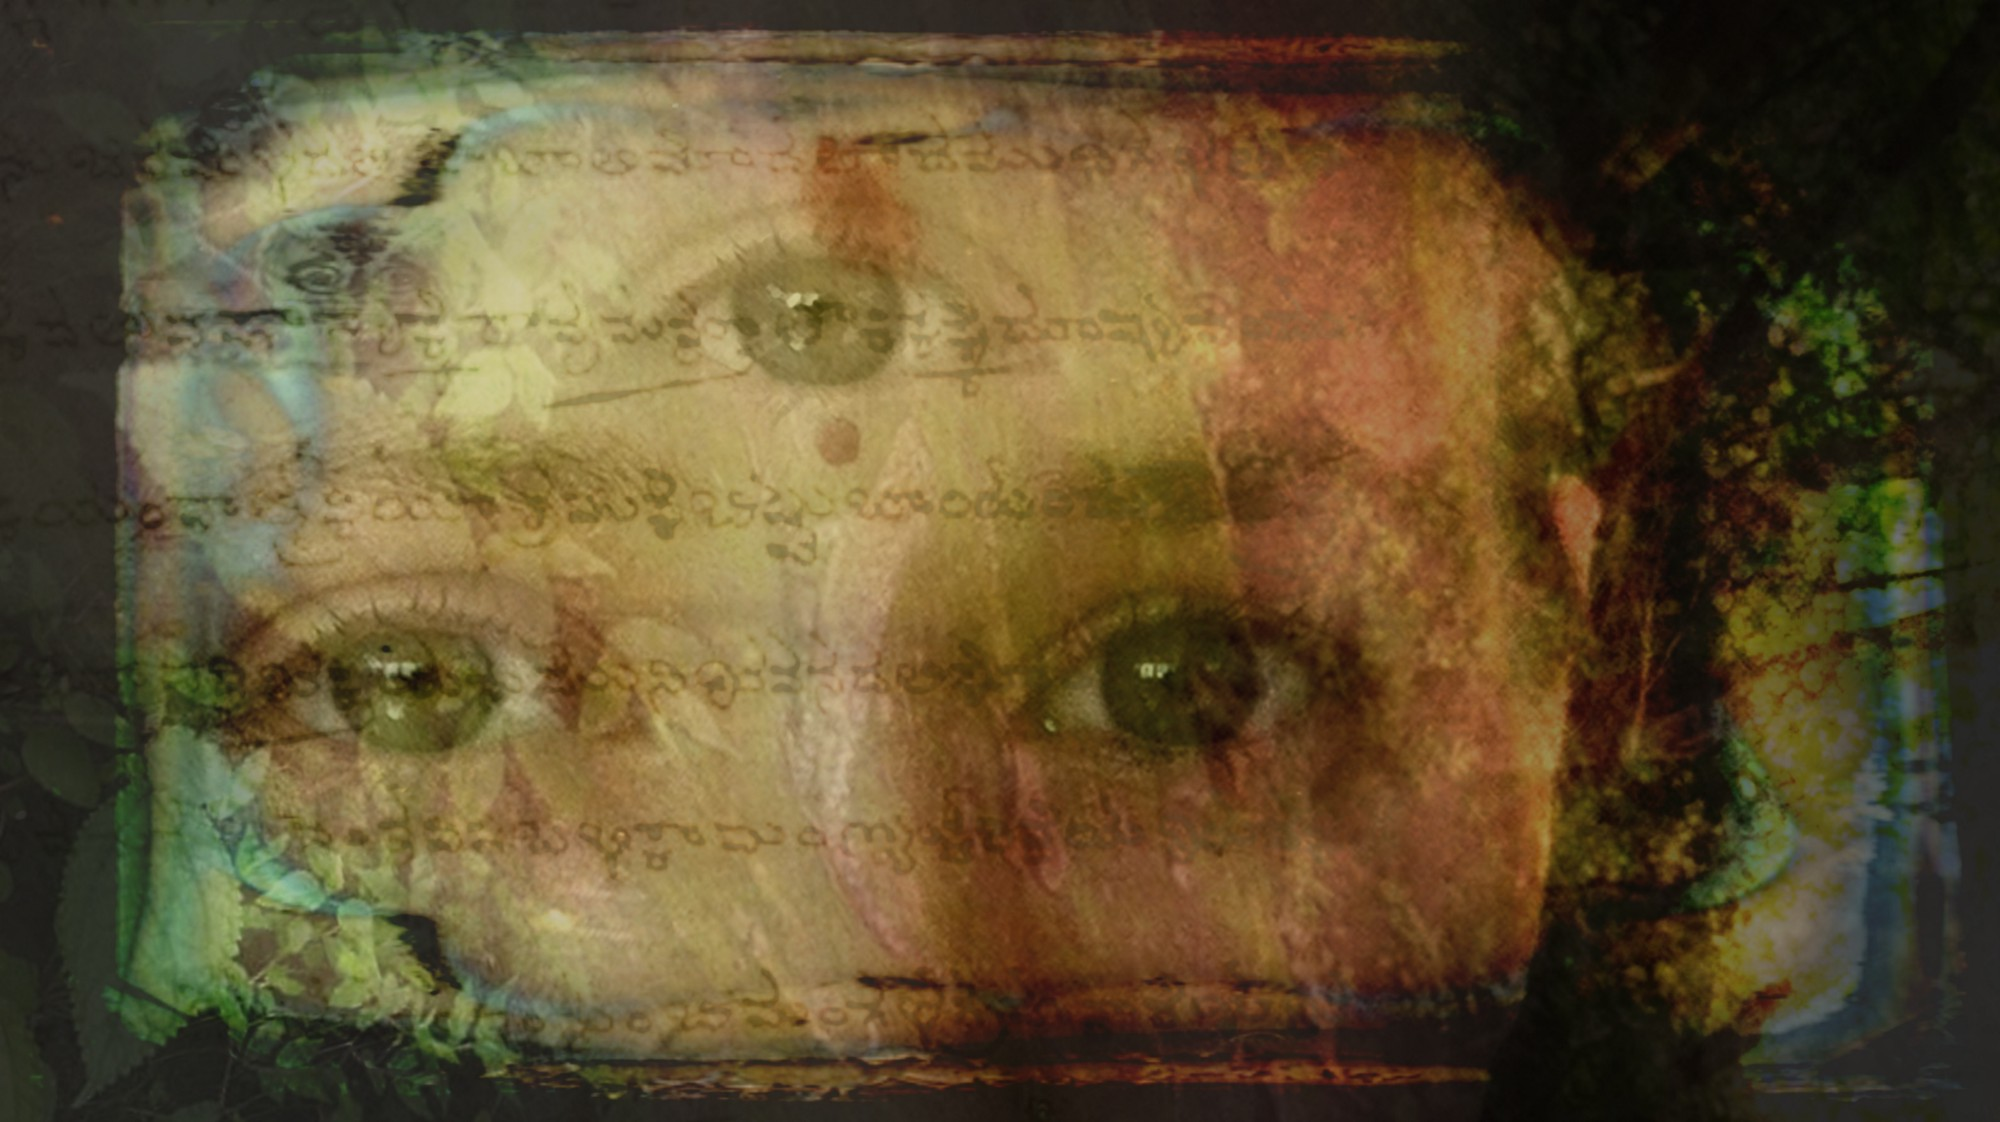 Composite image of a woman's eyes, with a third eye in the center of her forehead. Hindu writing can be faintly seen as an overlay.